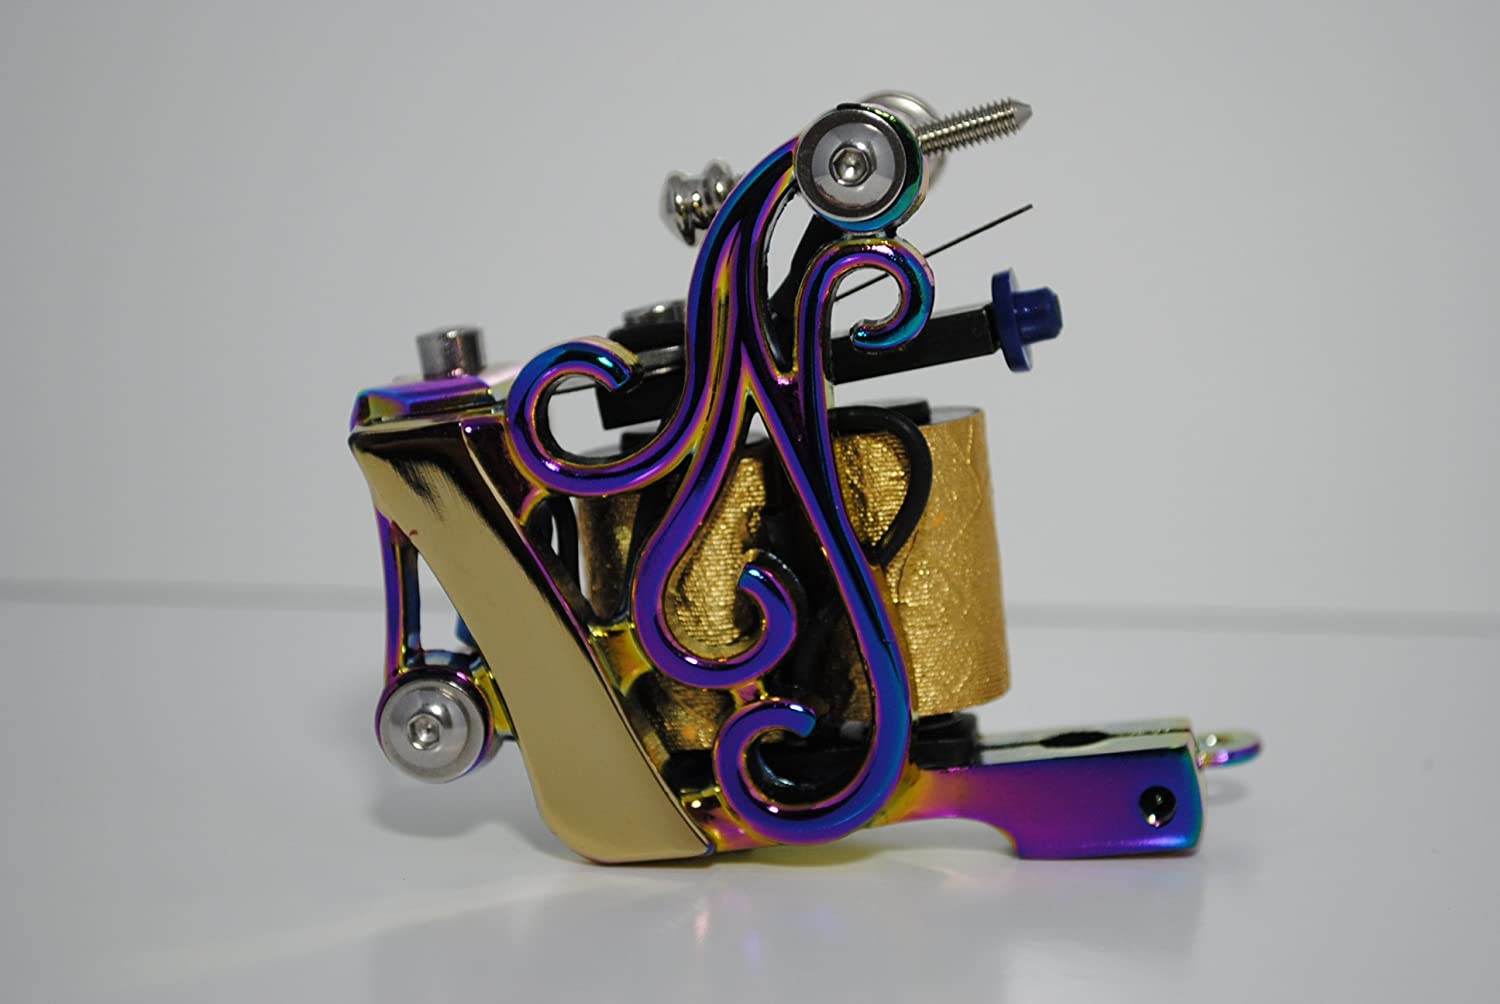 Amazon.com: 1TattooWorld Premium Copper Wire Coils Tattoo Machine ...